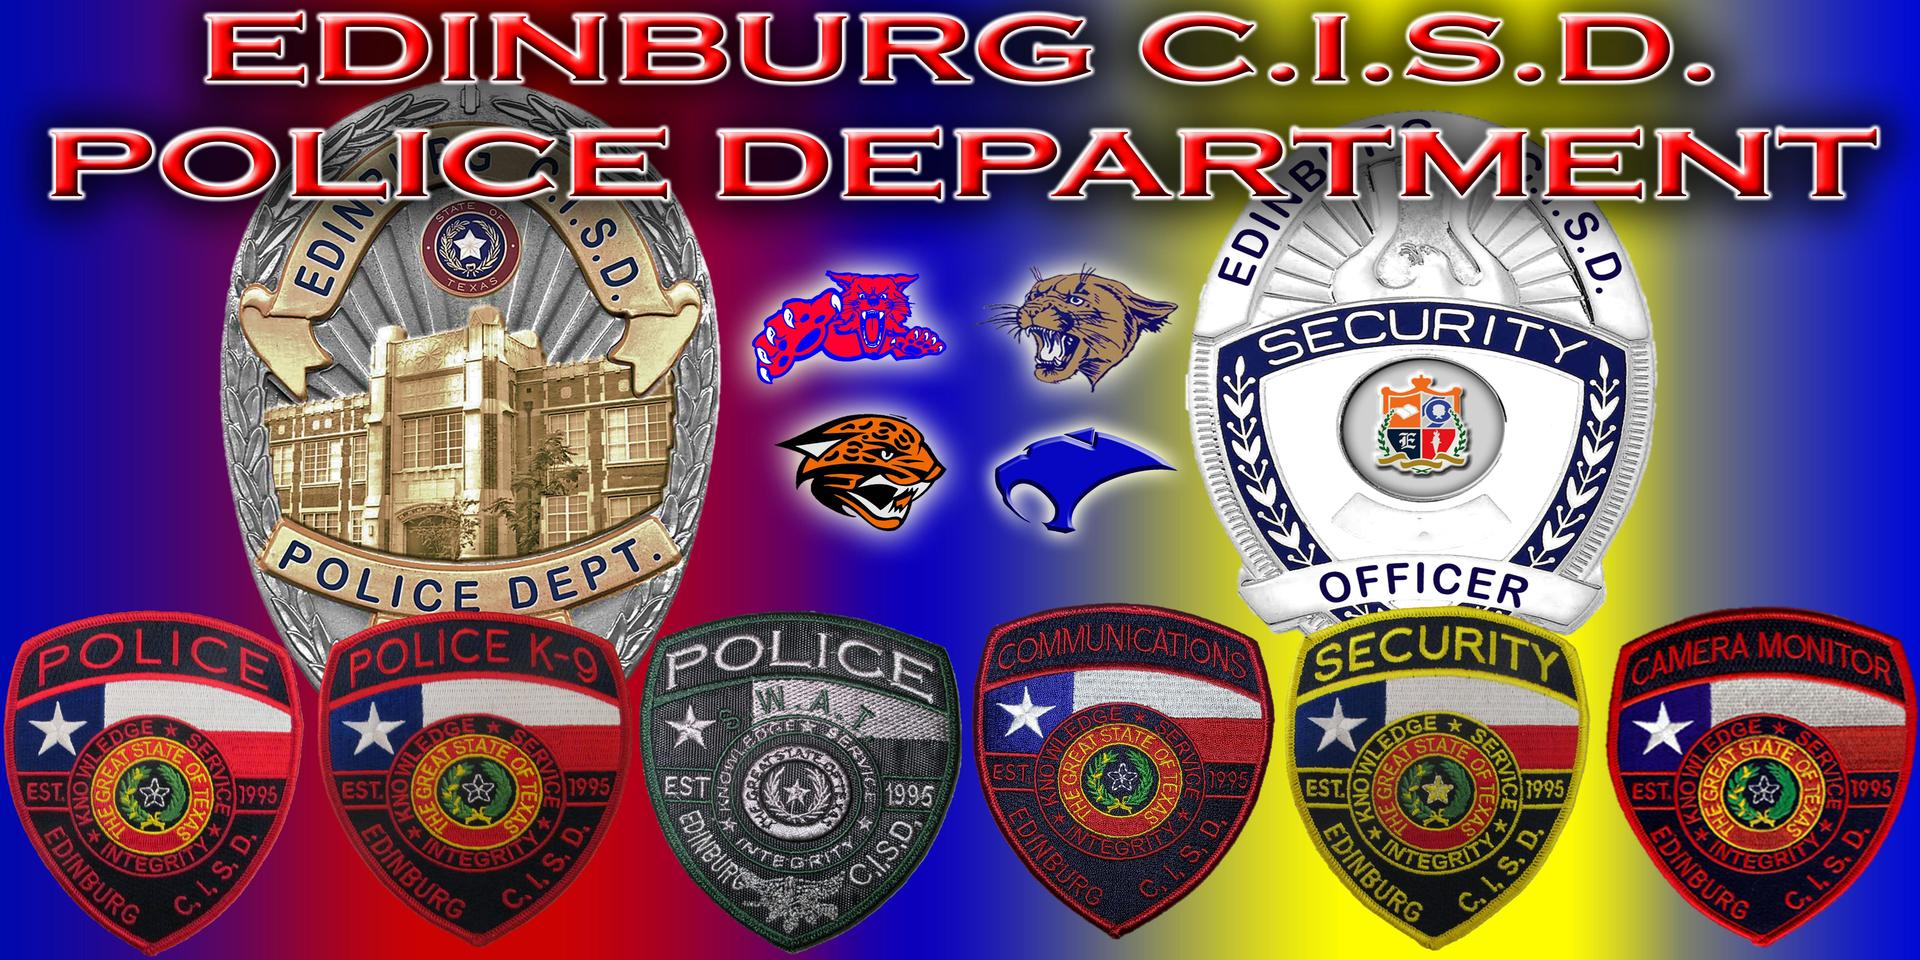 ECISD Police Department